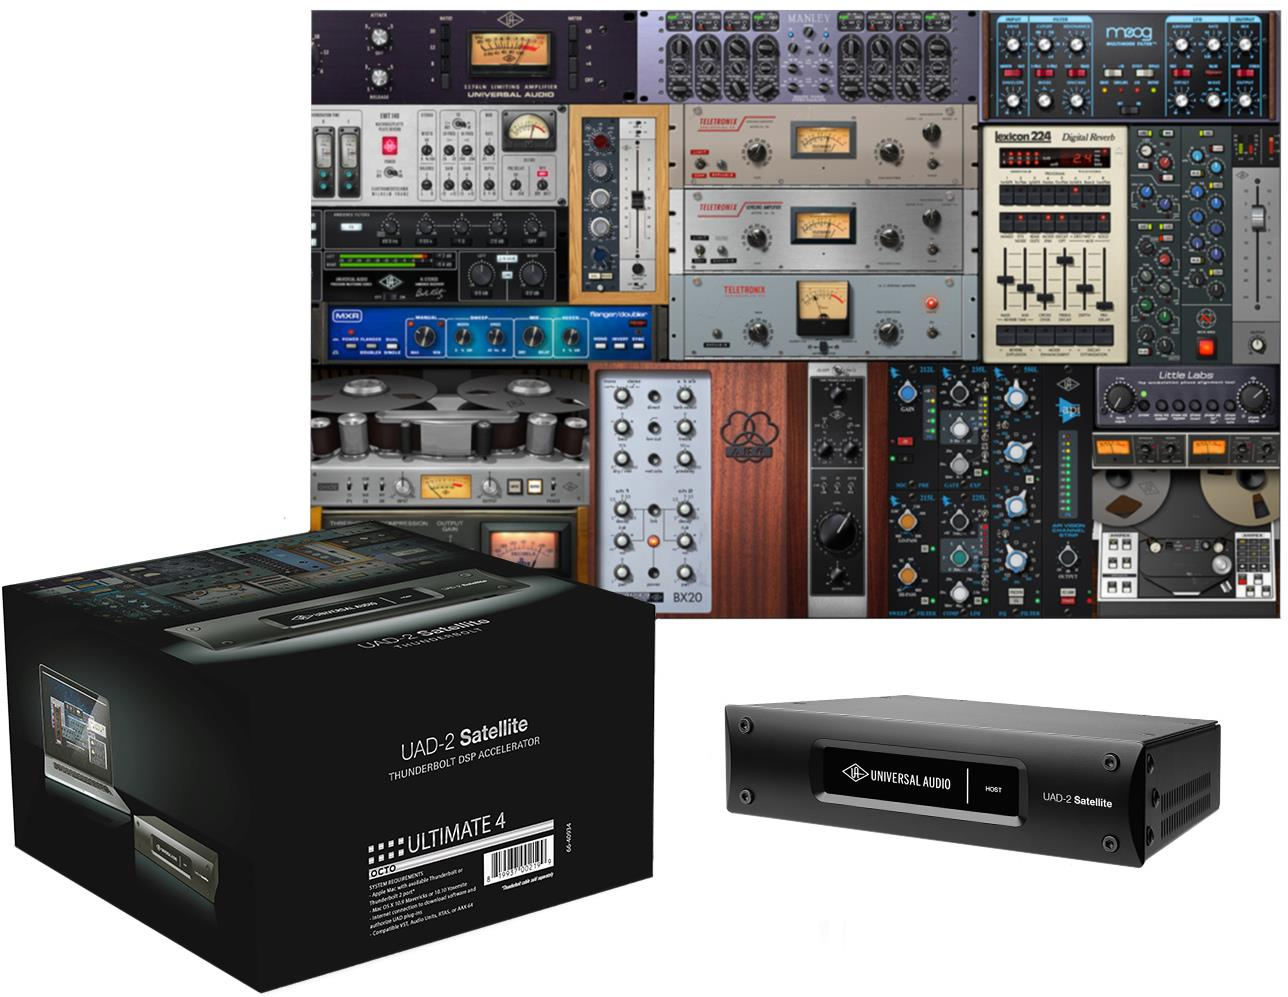 Universal audio uad 2 satellite thunderbolt octo ultimate 4 keymusic universal audio uad 2 satellite thunderbolt octo ultimate 4 thunderbolt interface stopboris Image collections